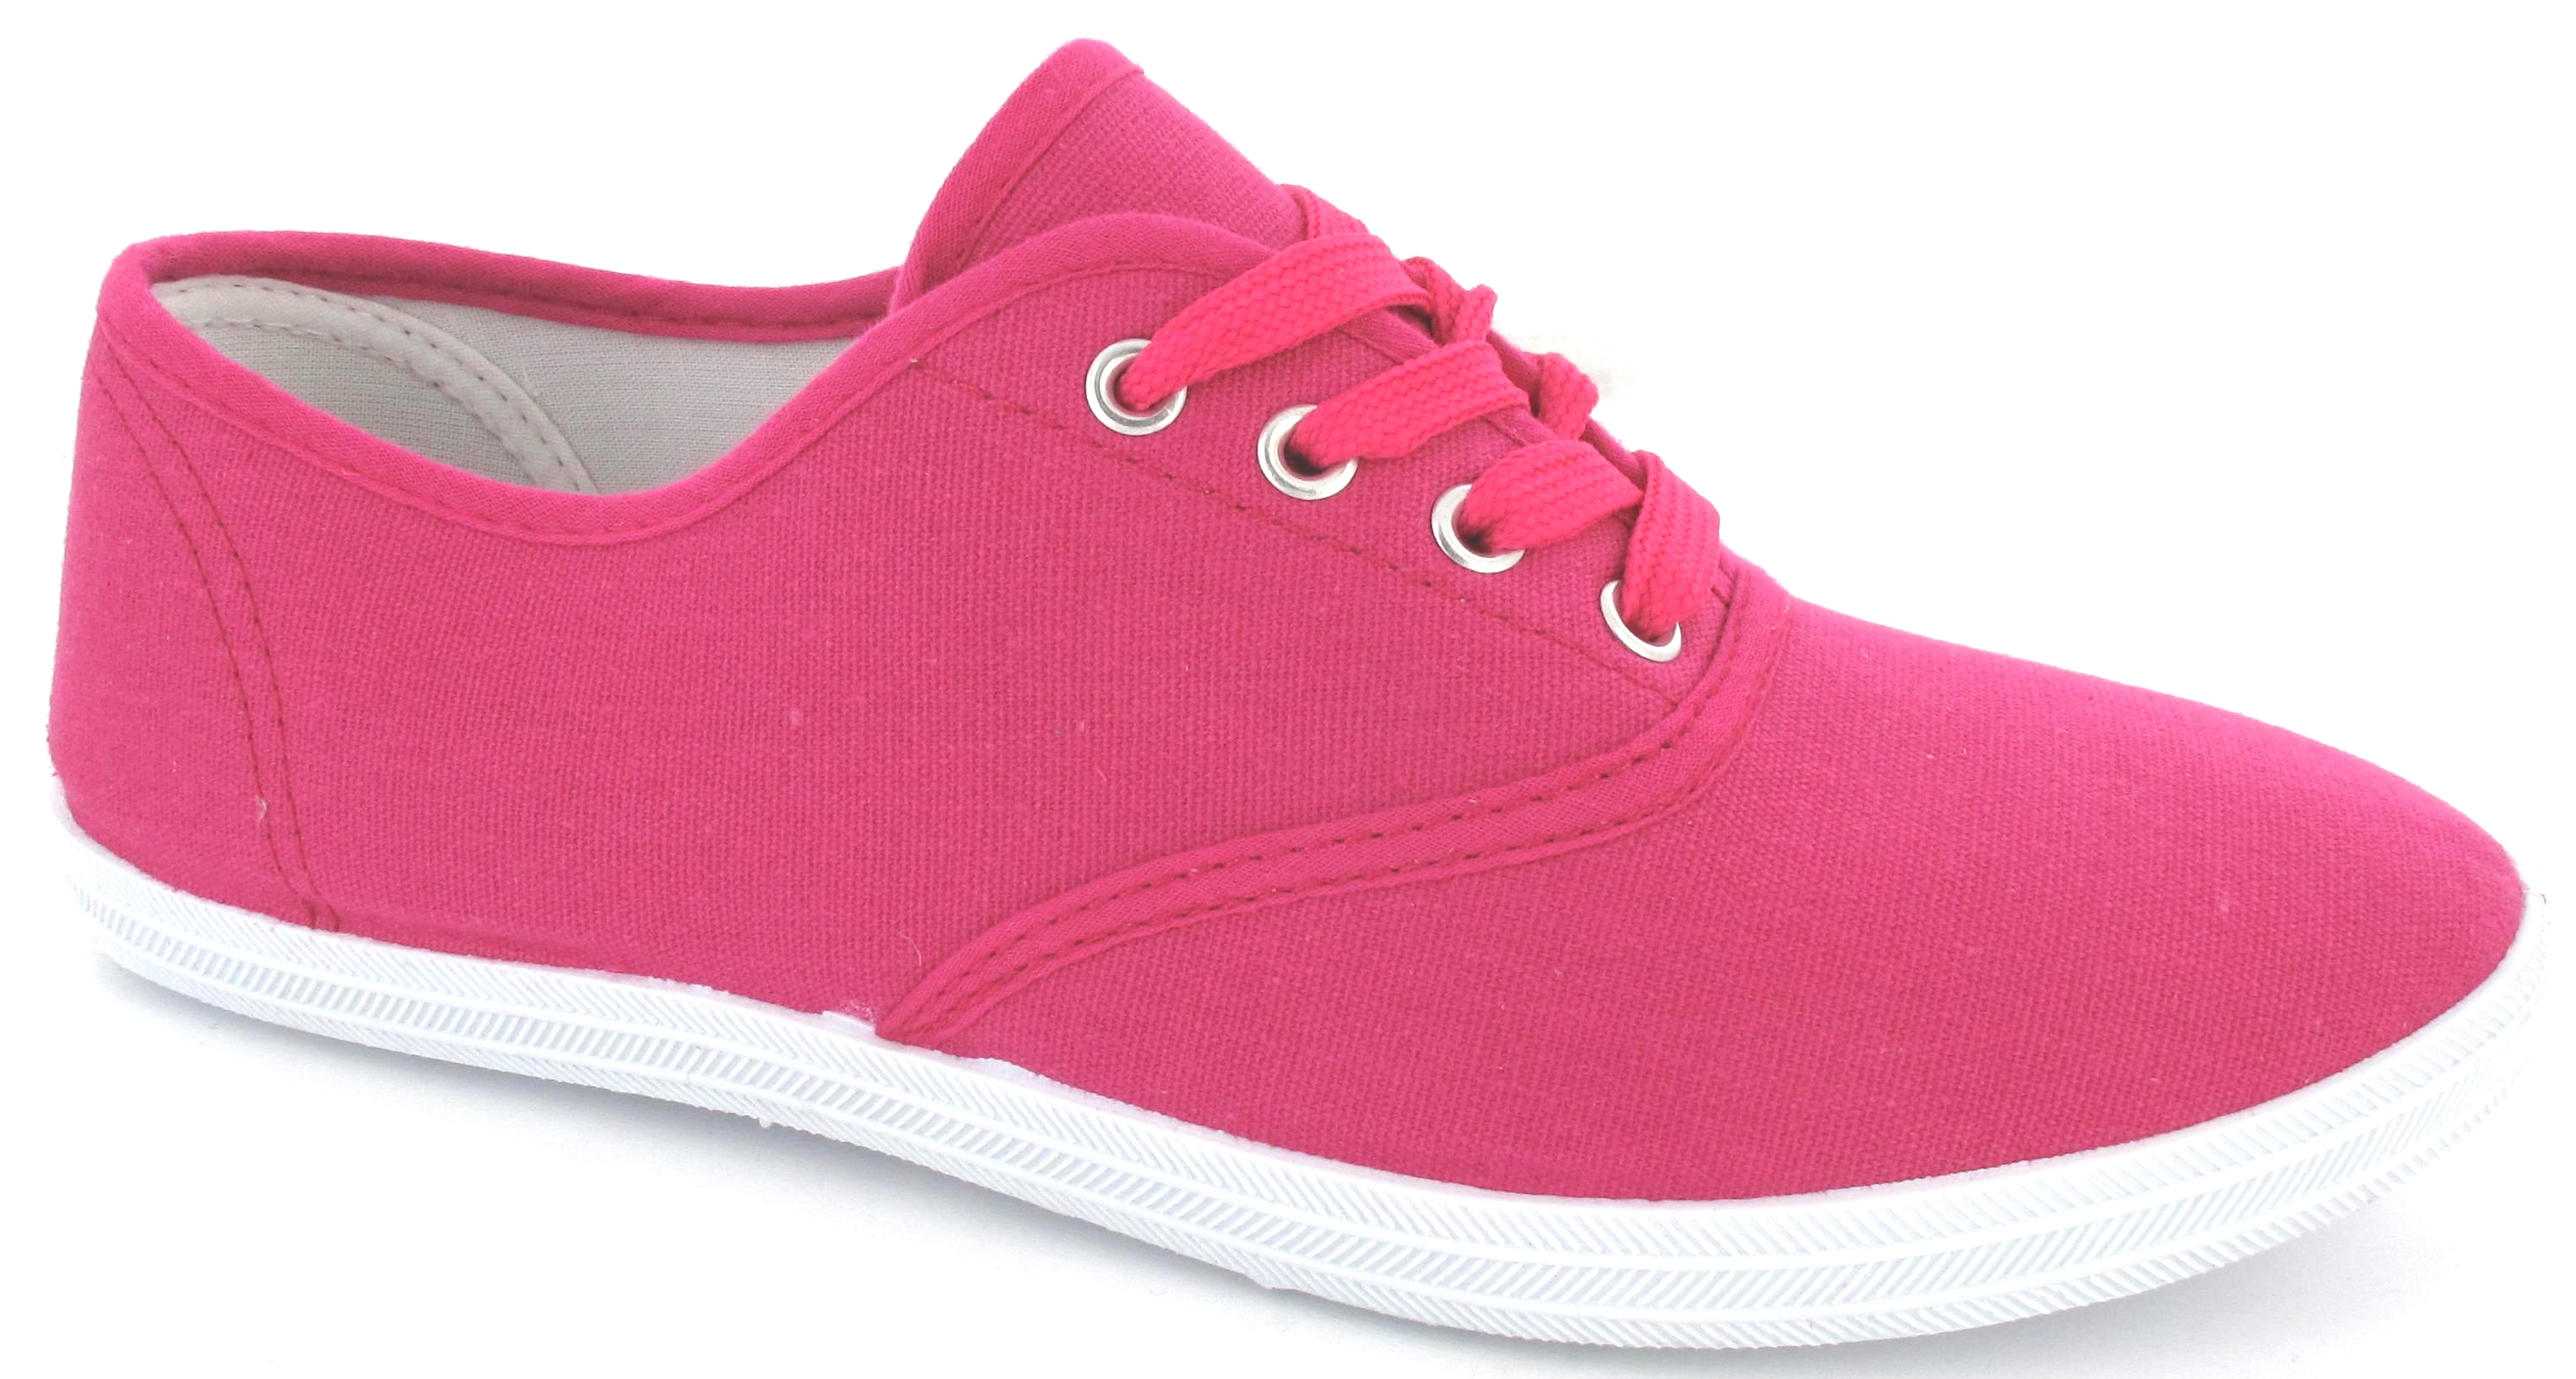 Fuschia Pink And Black Shoes